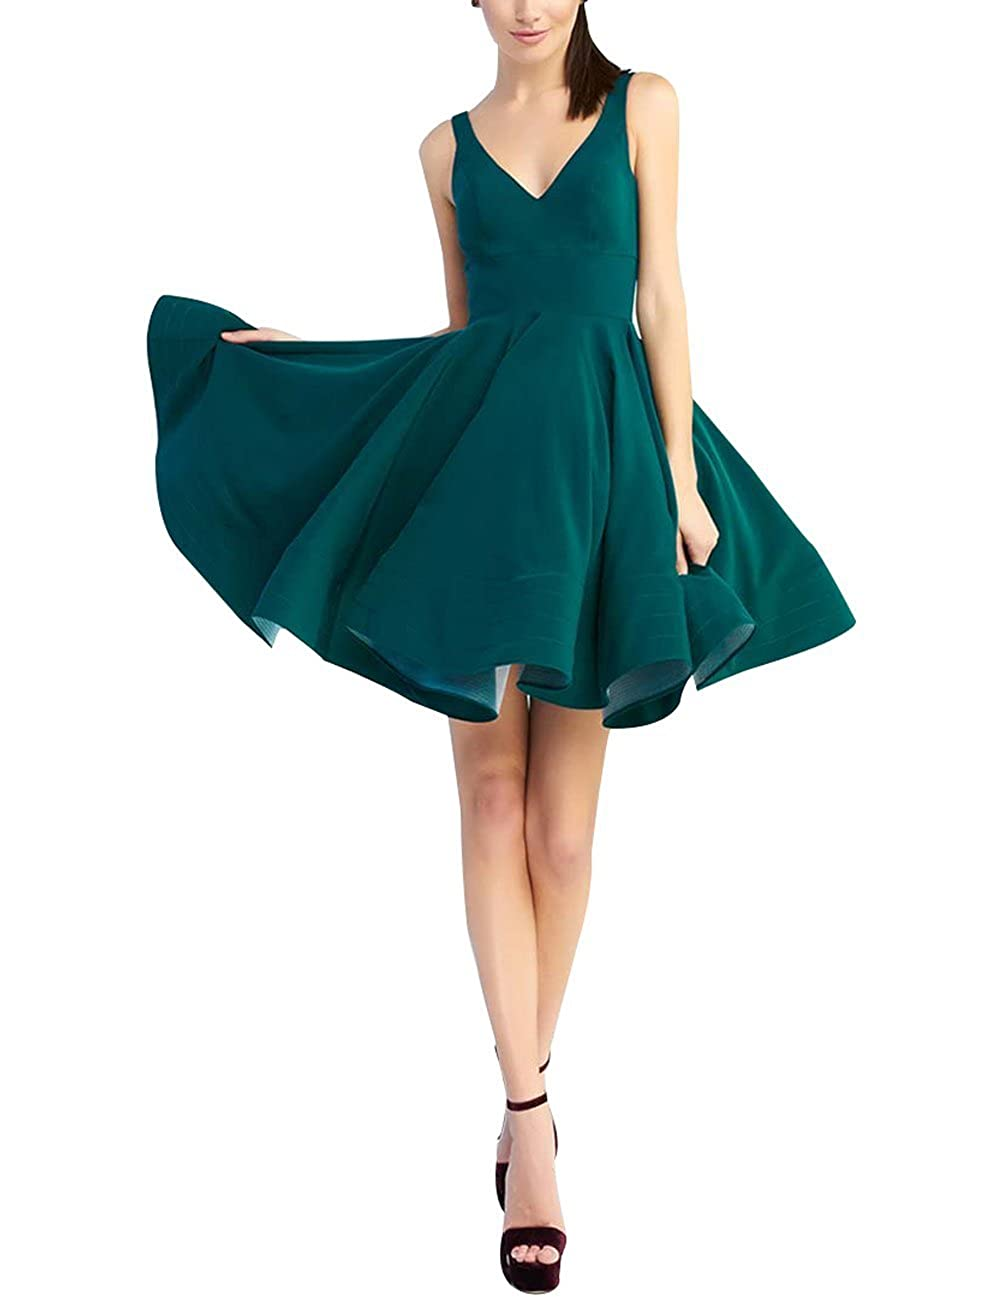 Short Homecoming Dresses 2018 A-Line V Neck Cocktail Prom Gowns for Women Satin